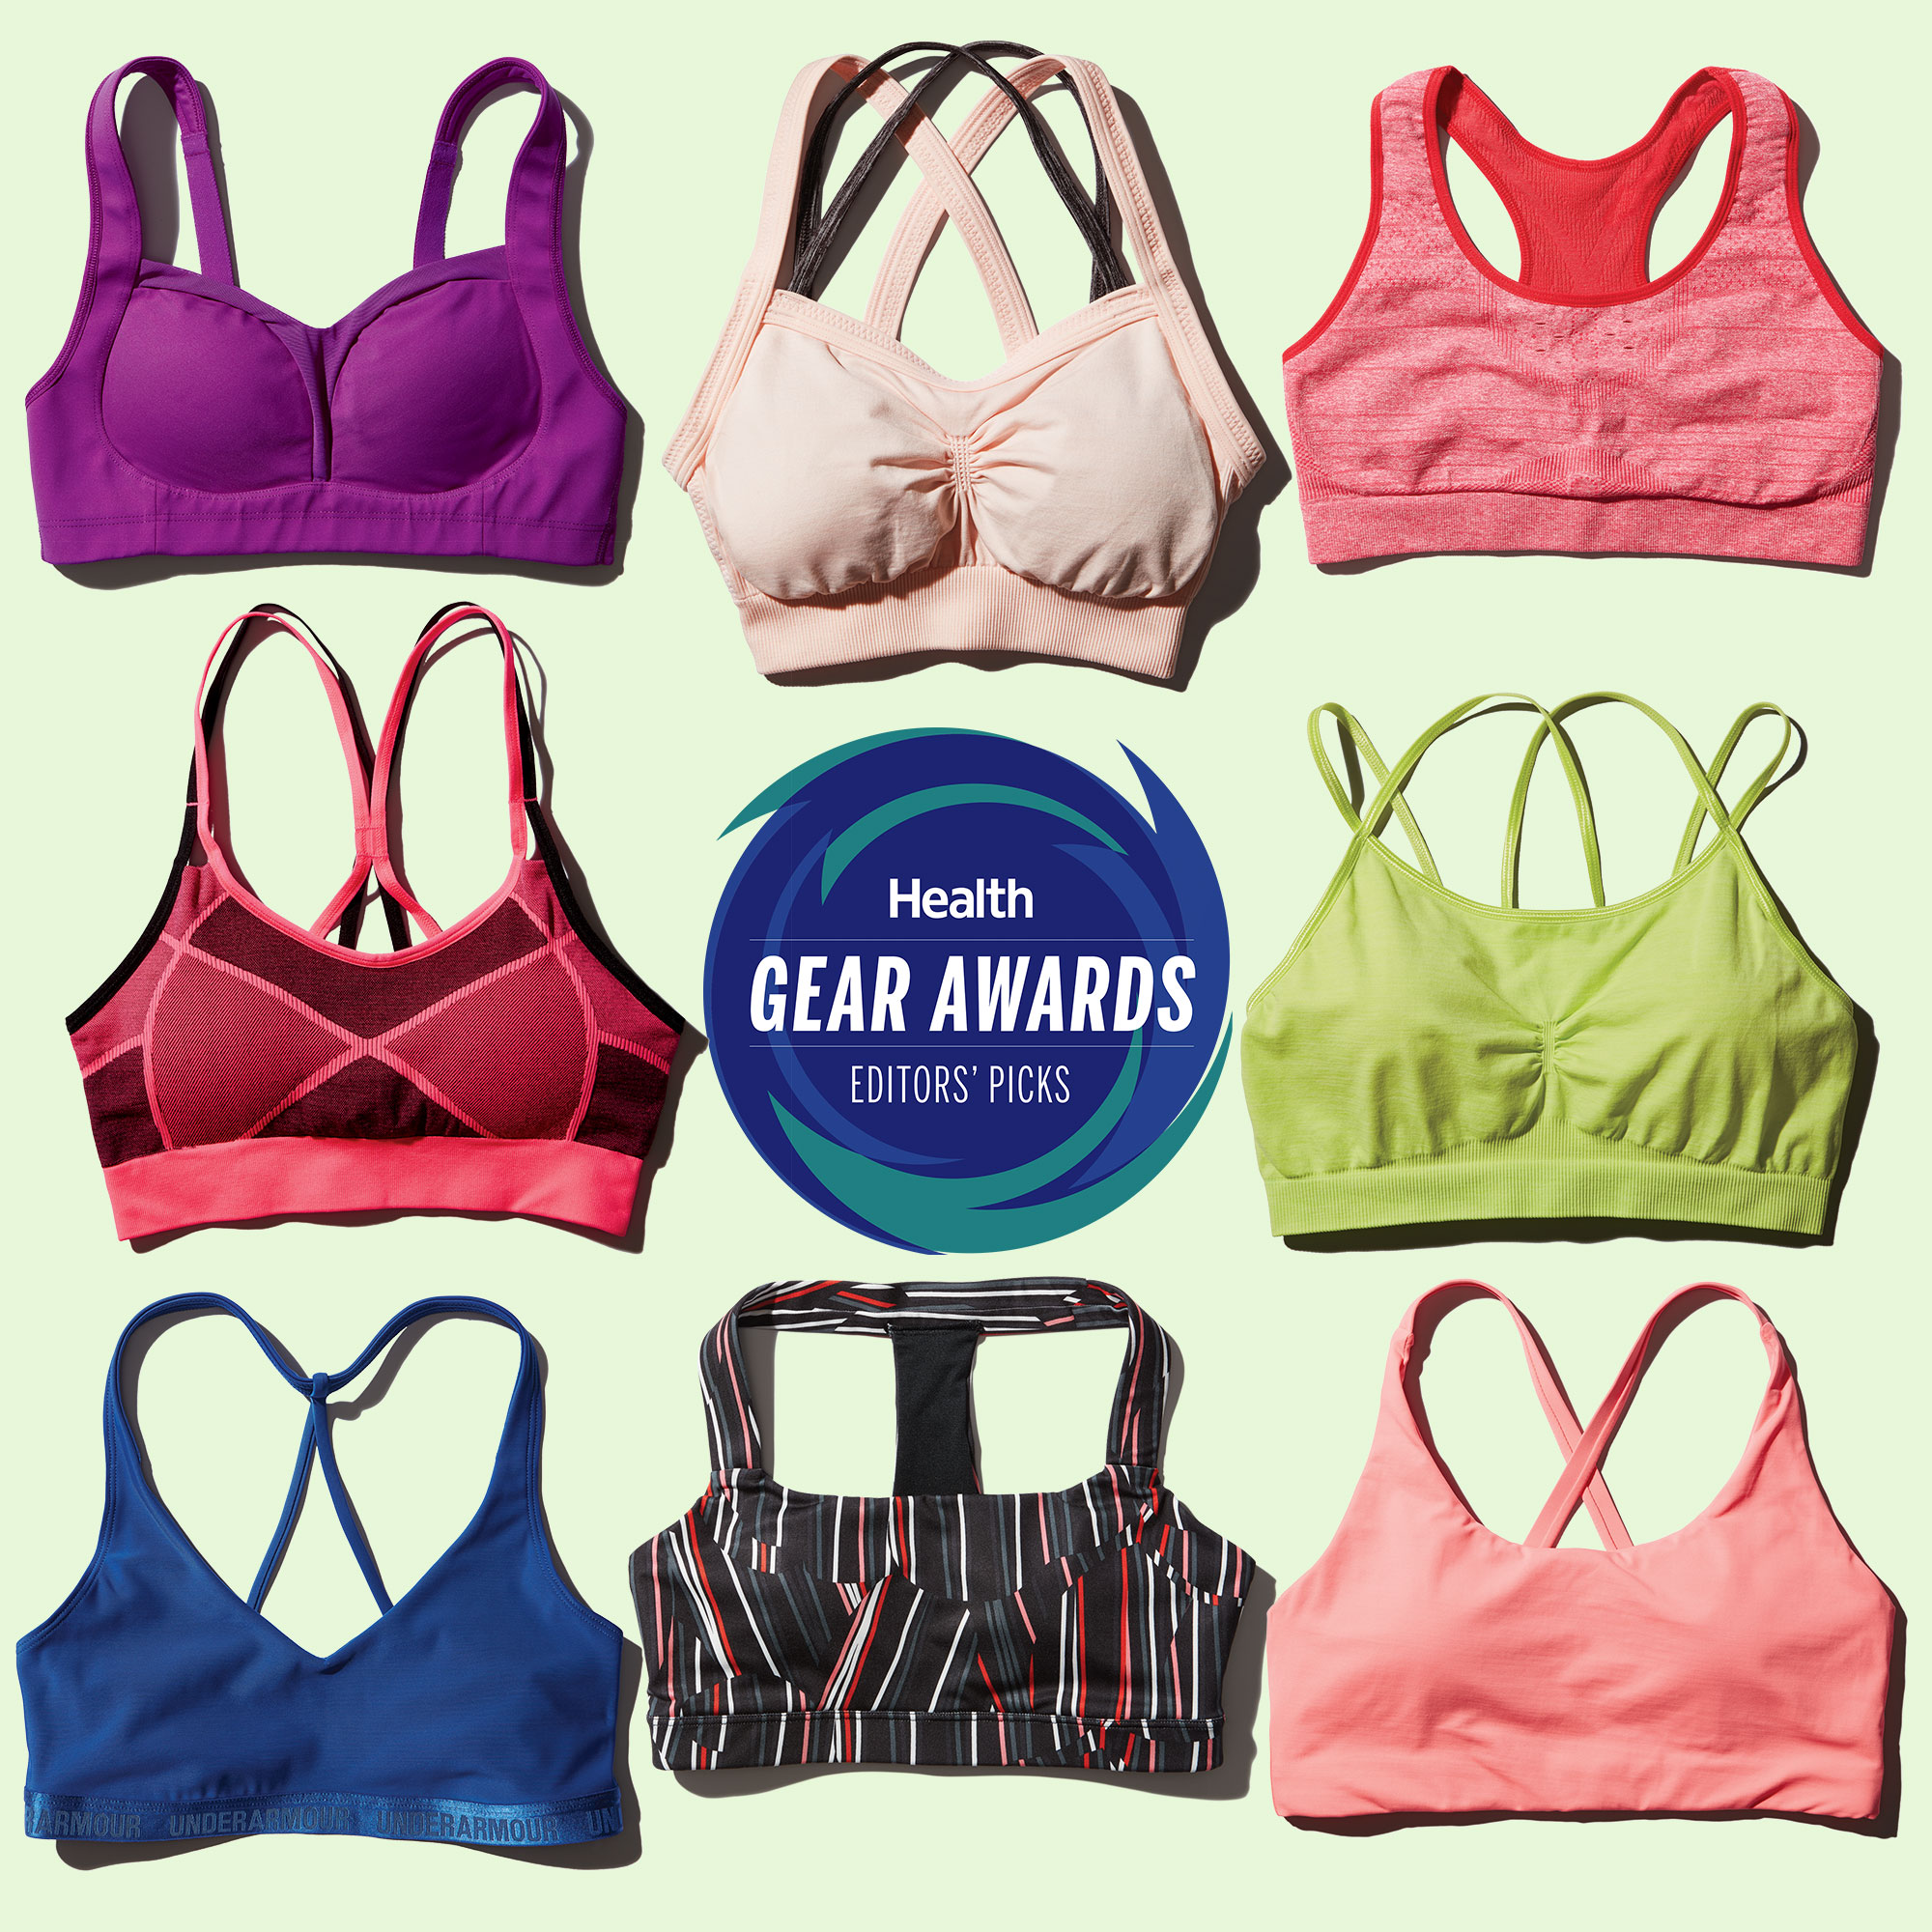 620334b3d21a2 Best Sports Bras Spring 2016 - Health